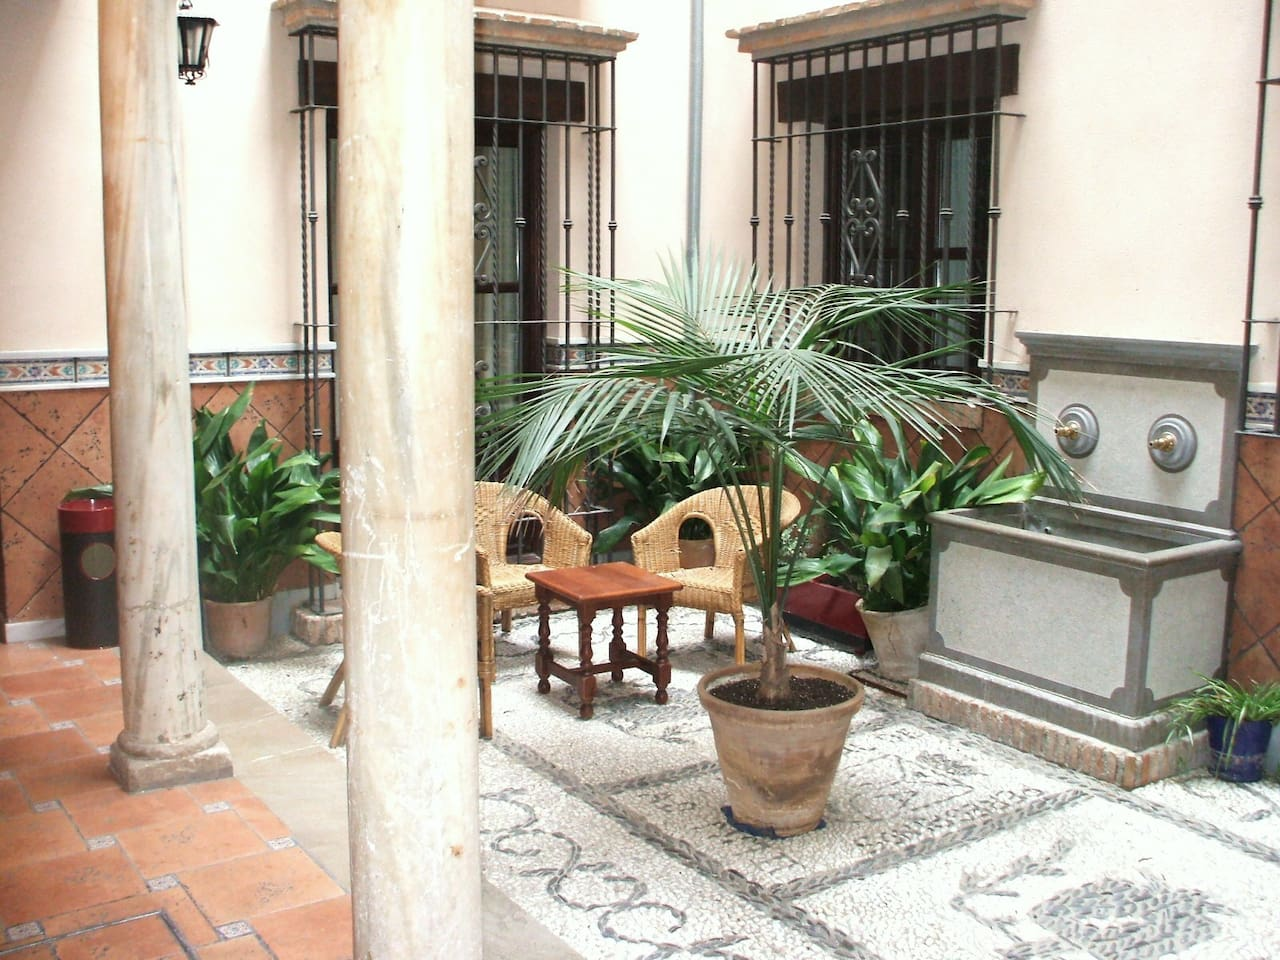 Thipical andalusian patio with originals marbles pilars of 16 th century.